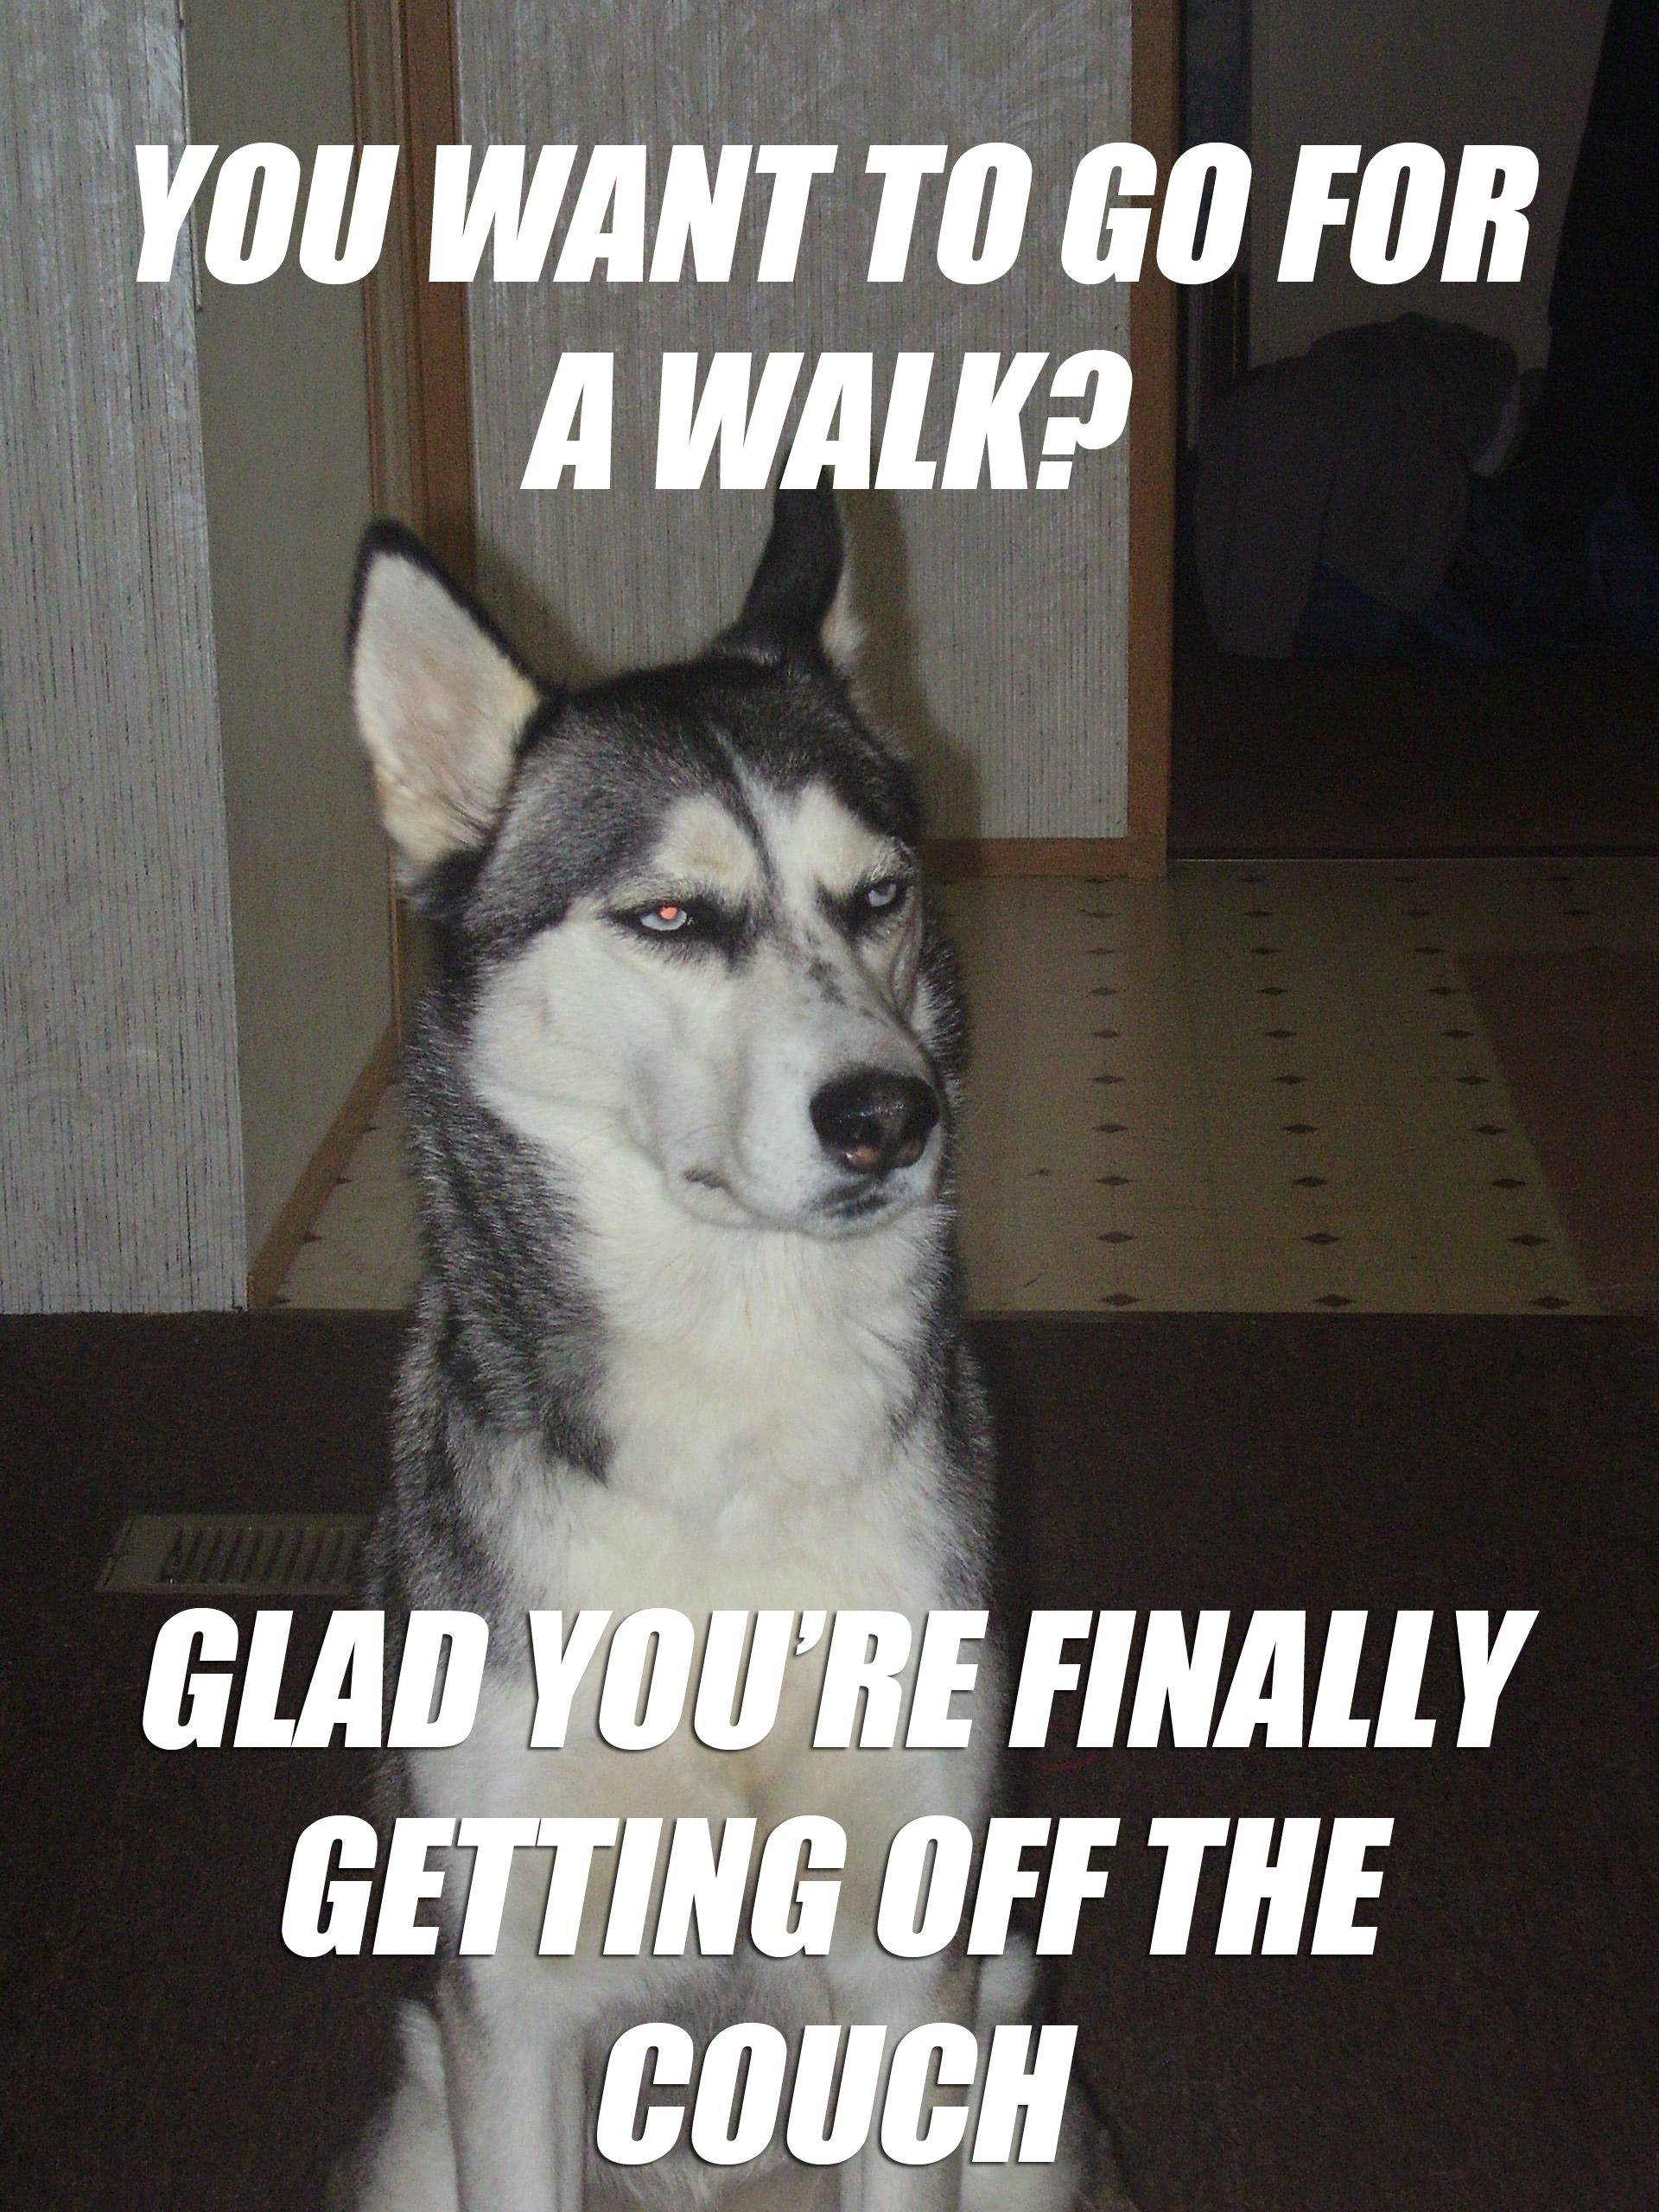 Sarcastic Dog Meme On Going For A Walk